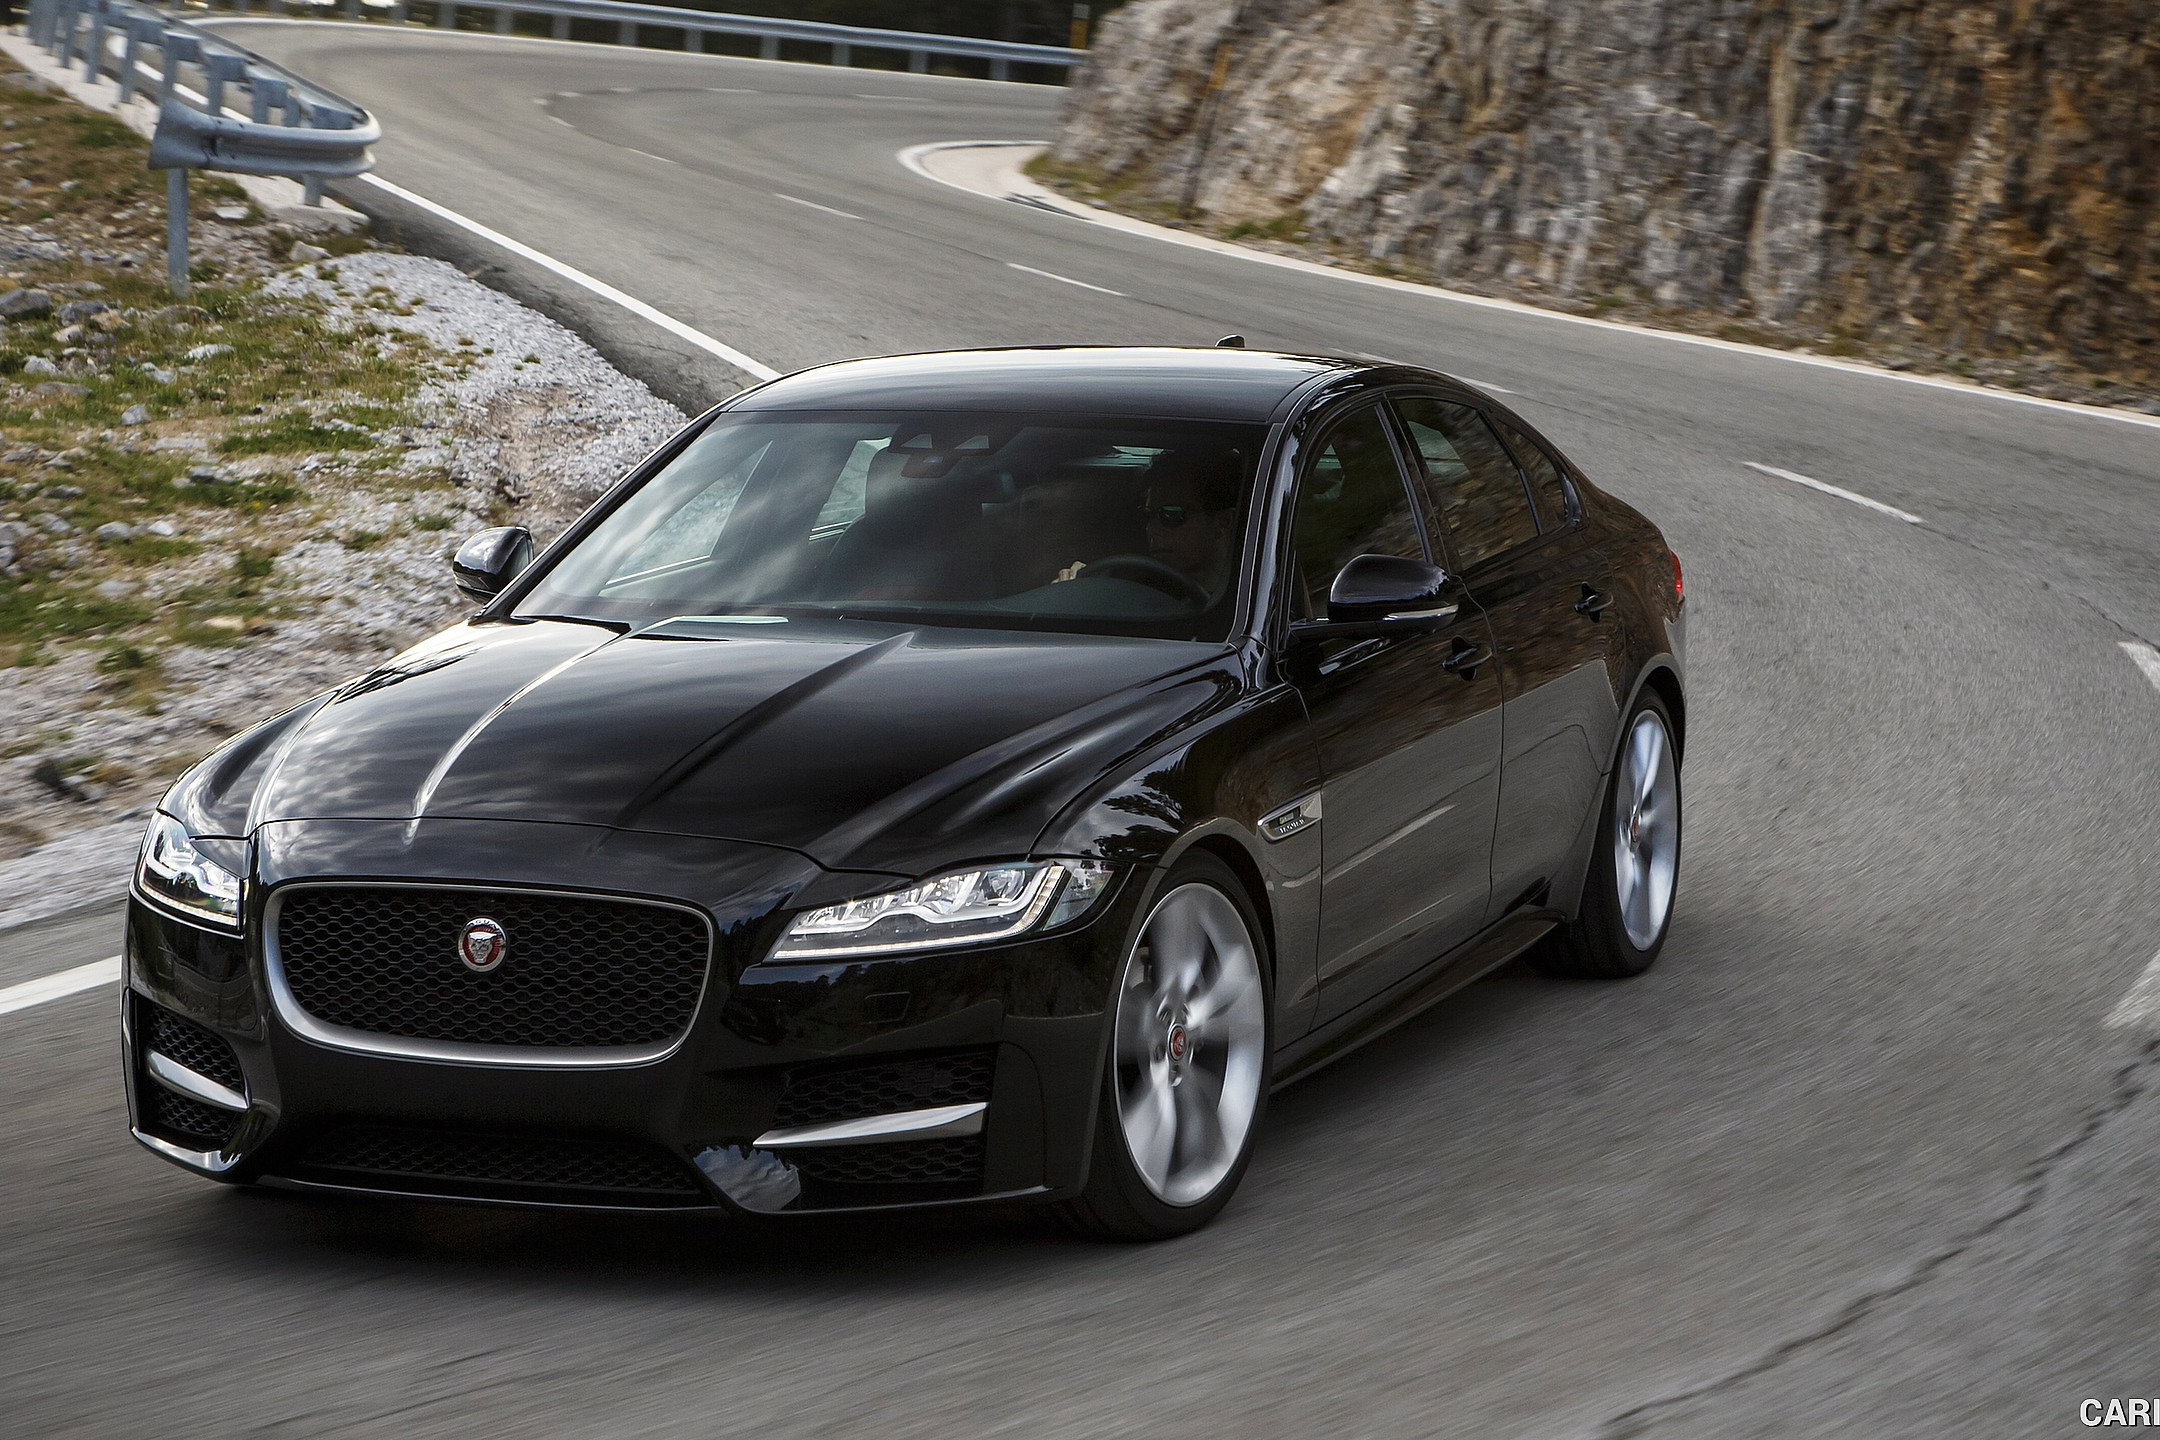 type photo xj lease car pictures specs a f details jaguar and evo project